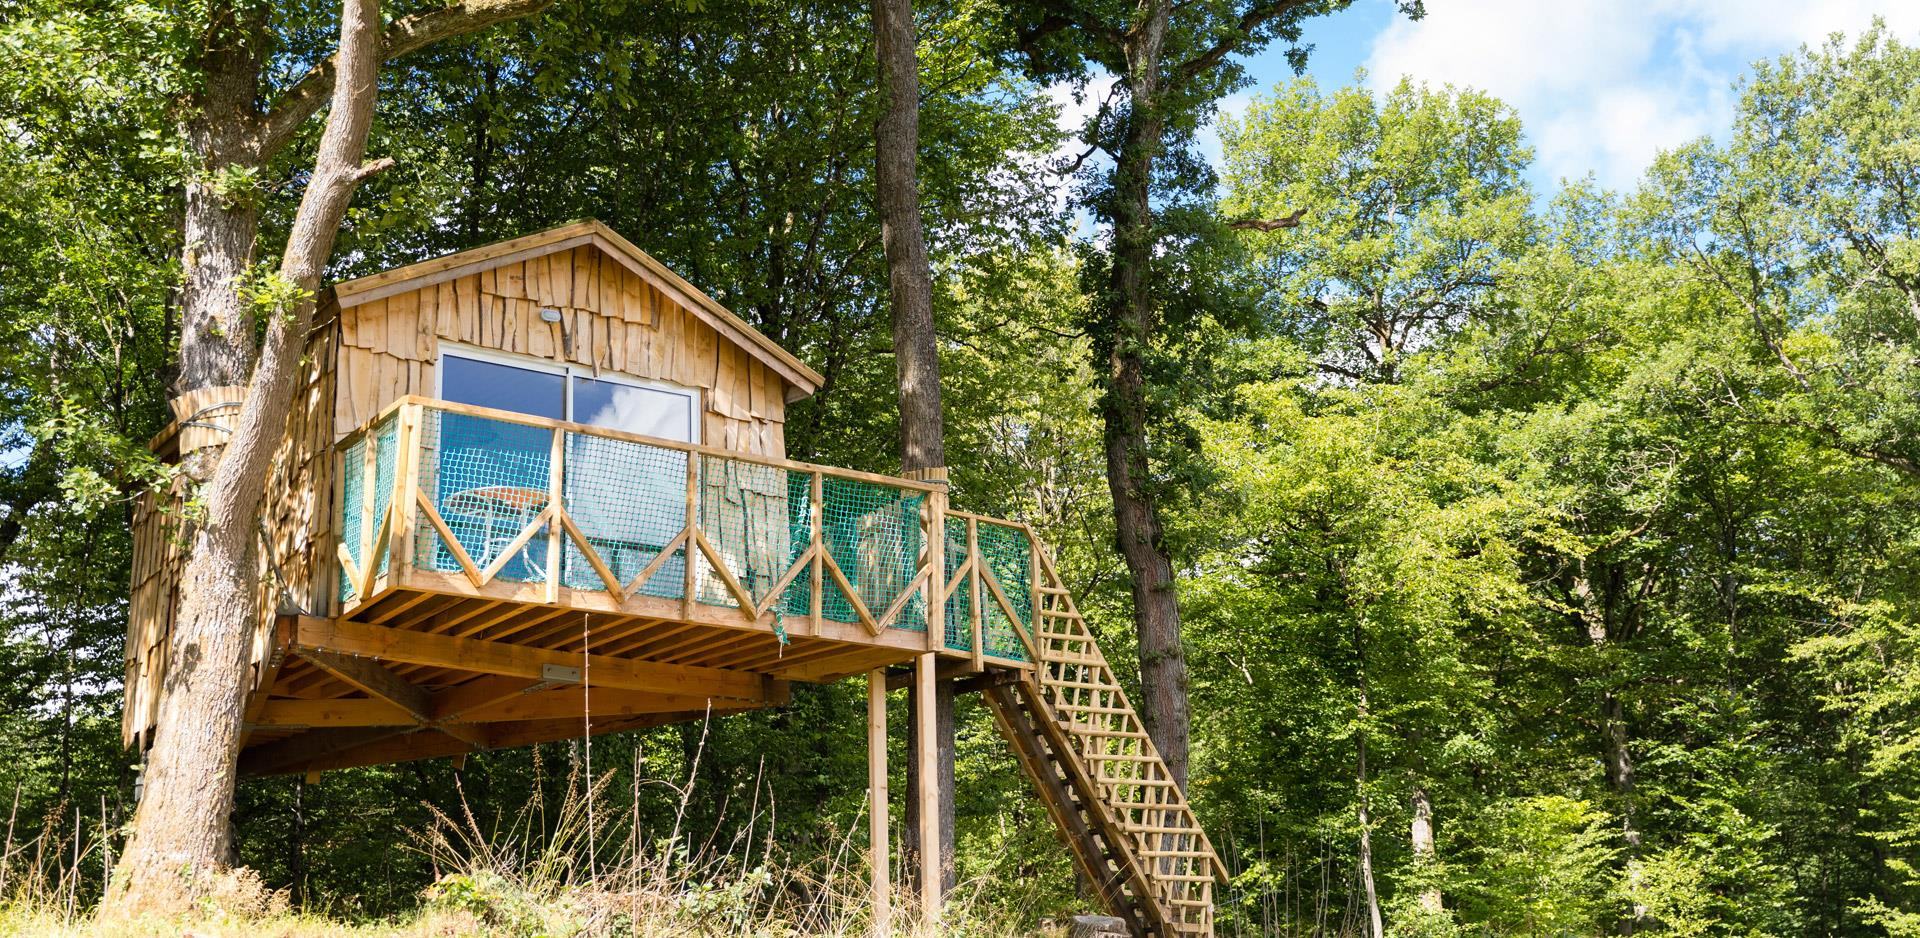 Rental of atypical accommodations in Alsace: atypical wooden cabin